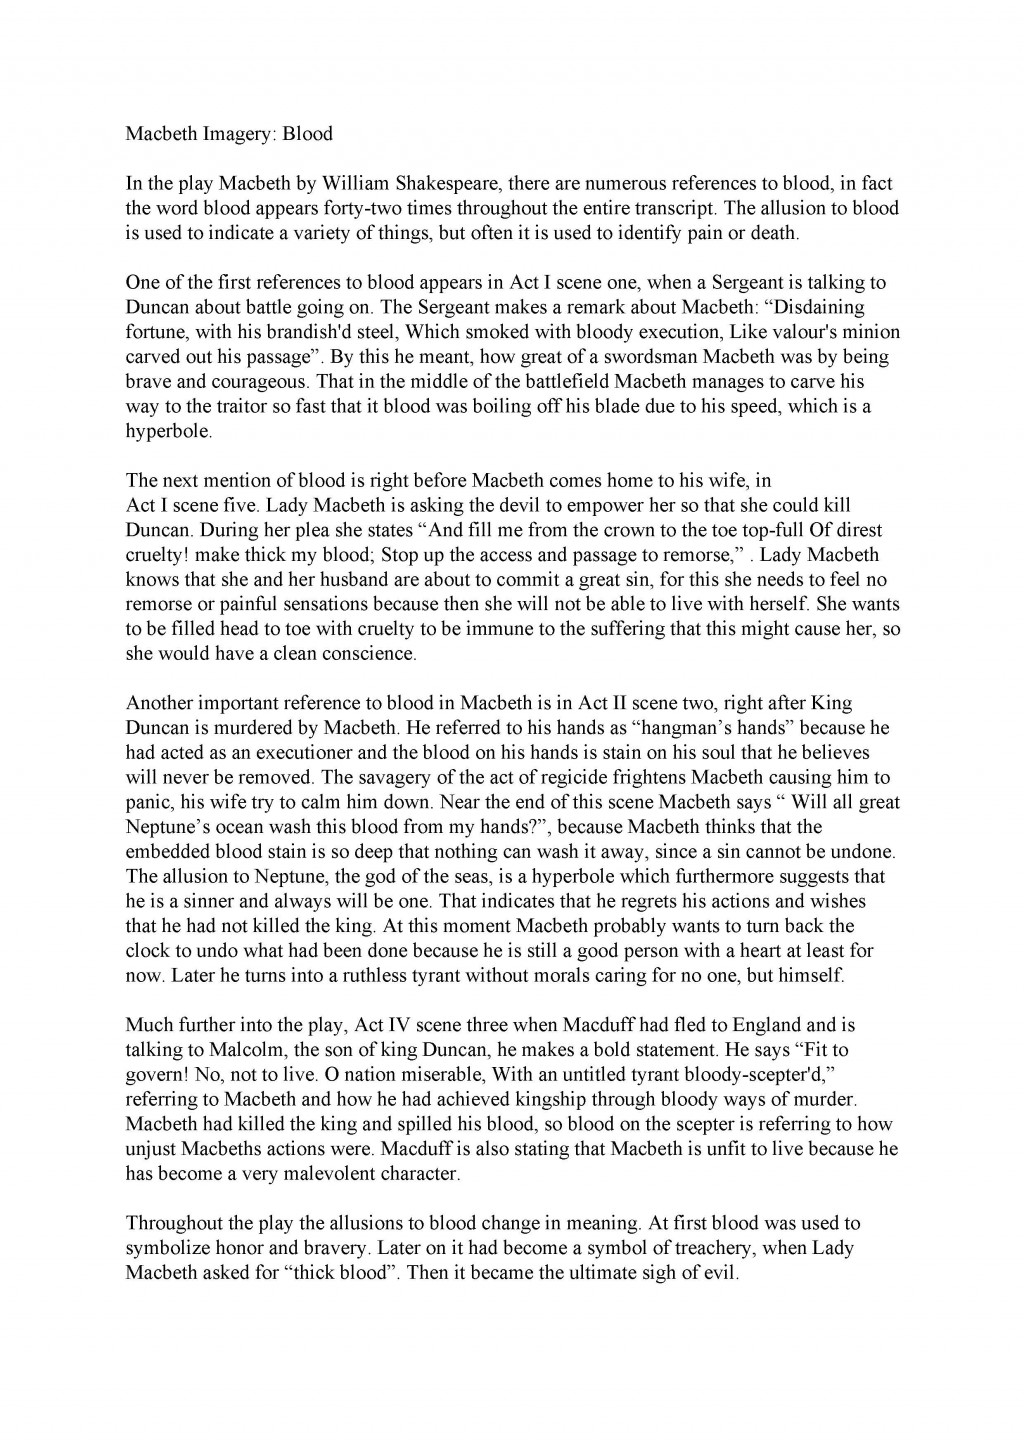 002 Macbeth Essay Sample Example Unusual Essays Narrative In Apa Format Free For Middle School Students College Ucla Large